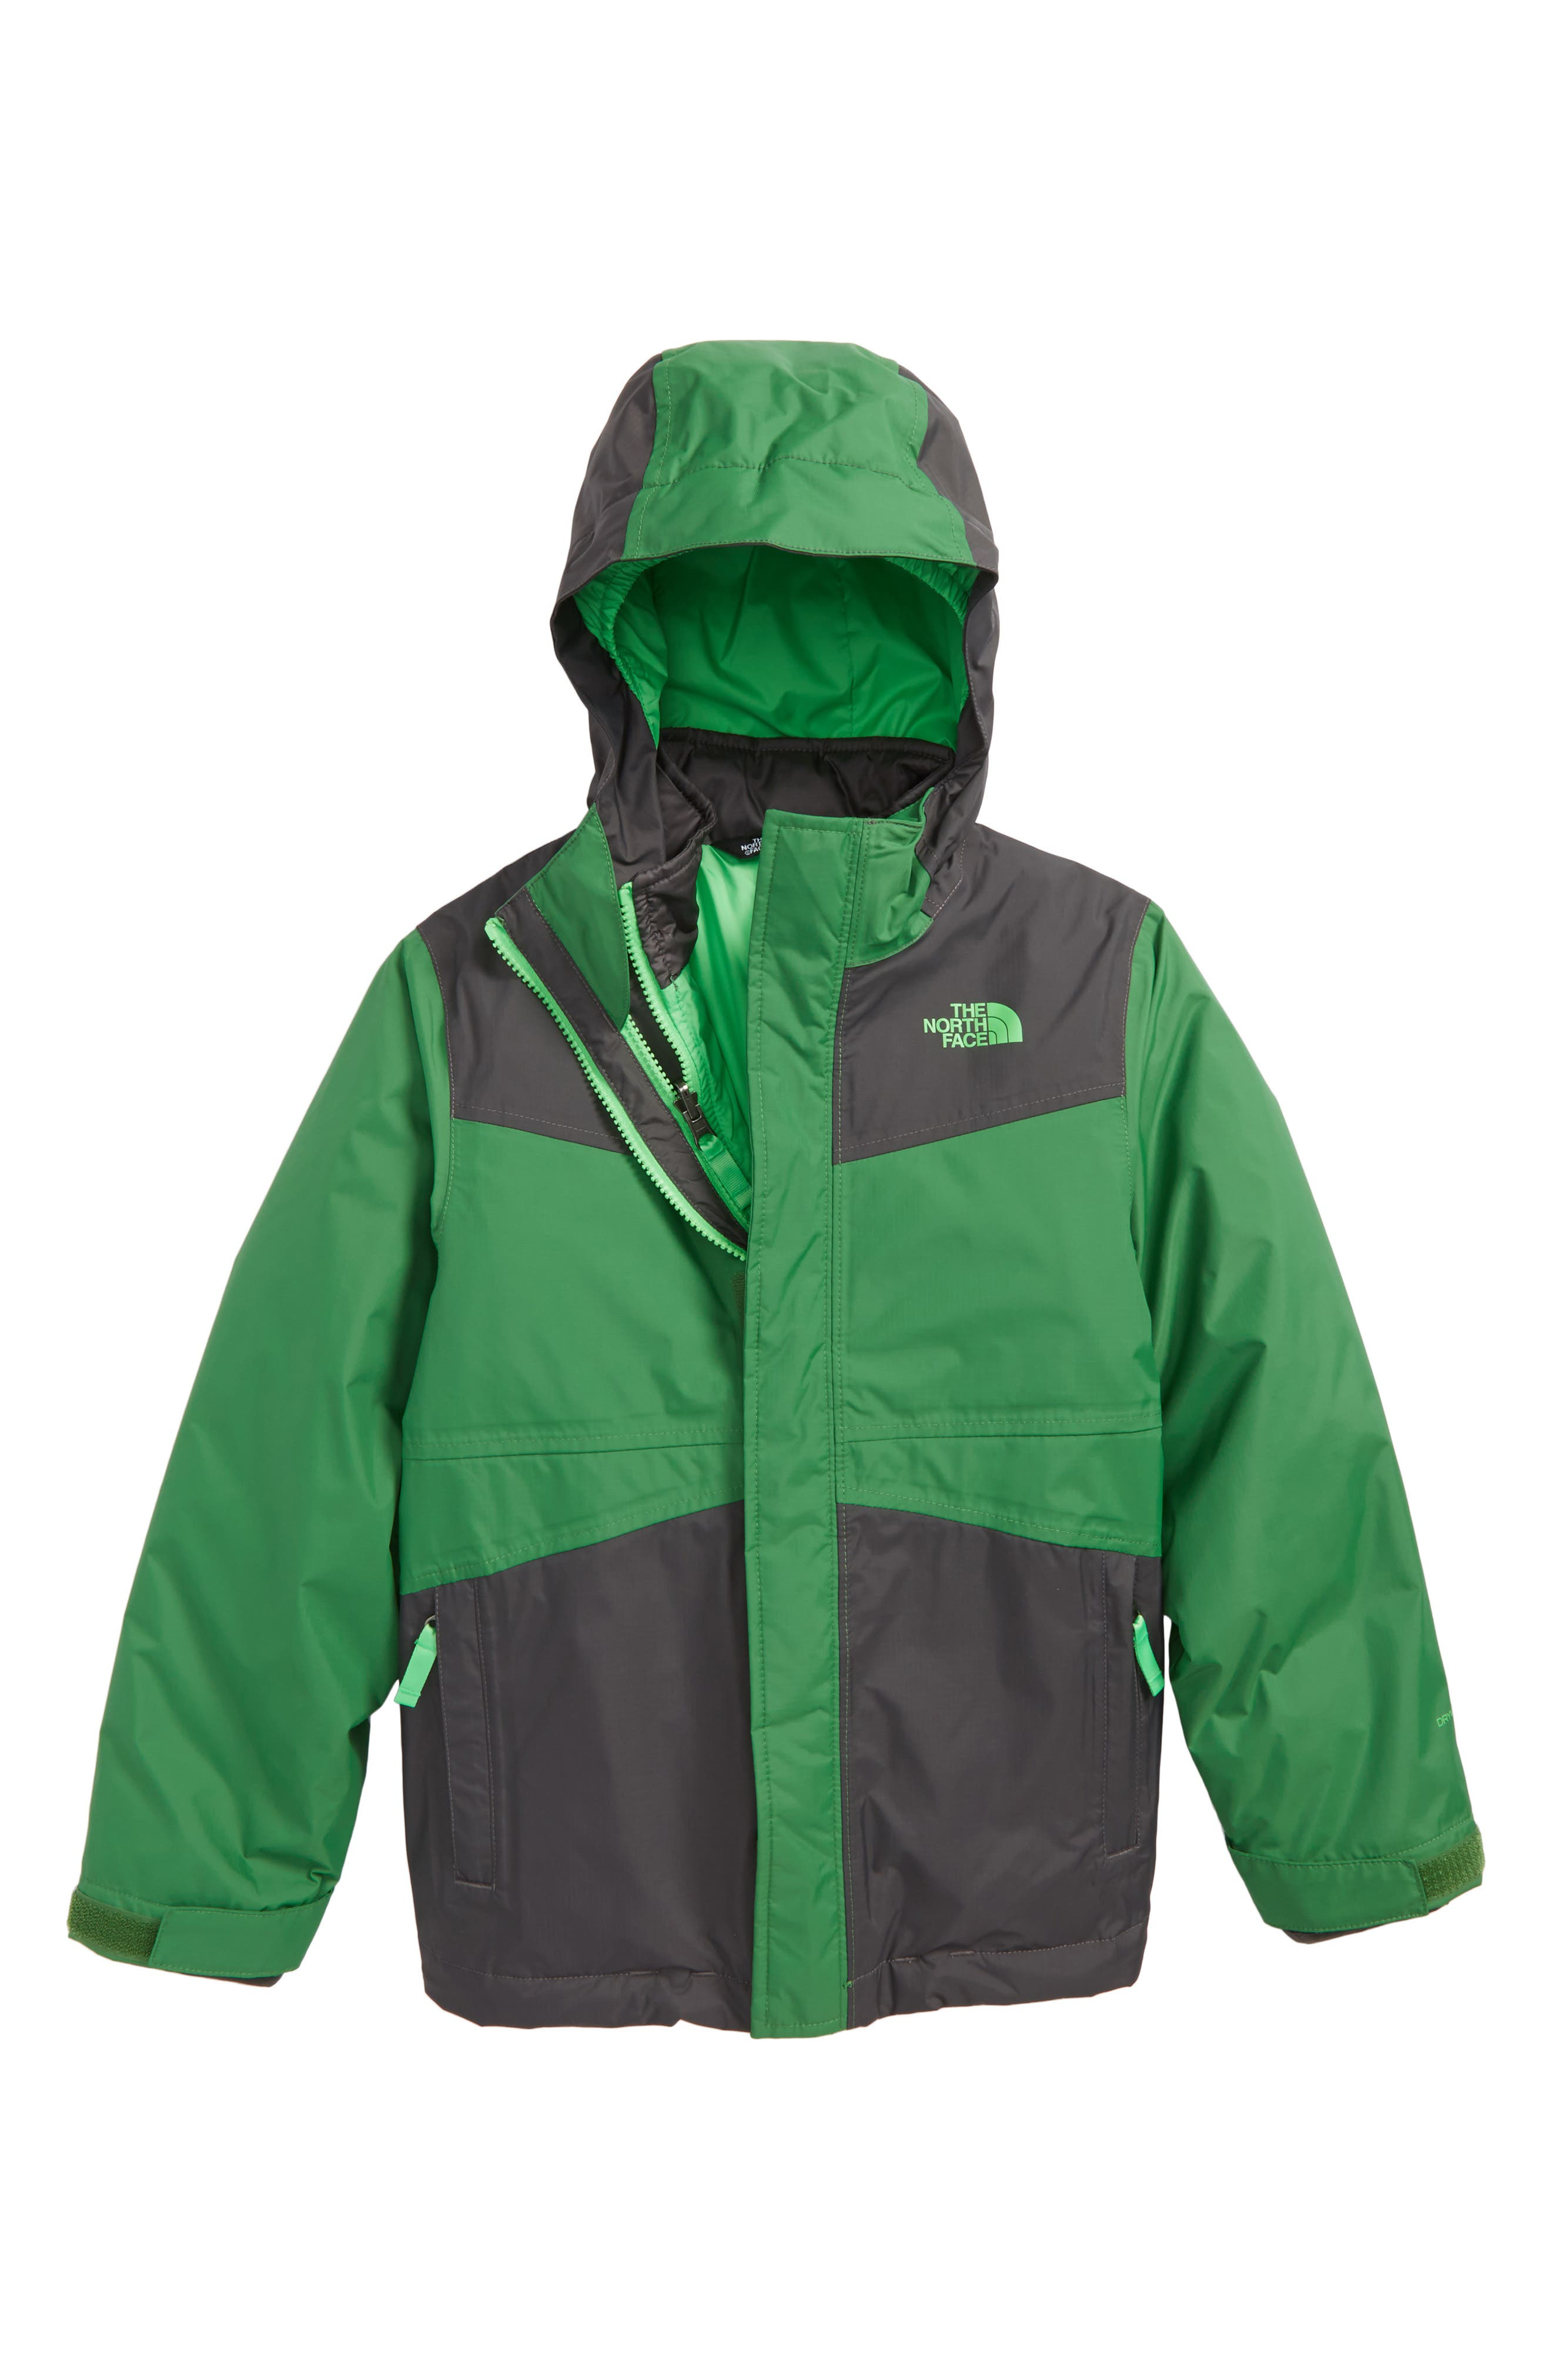 East Ridge Triclimate<sup>®</sup> Waterproof 3-in-1 Jacket,                             Main thumbnail 1, color,                             Sullivan Green